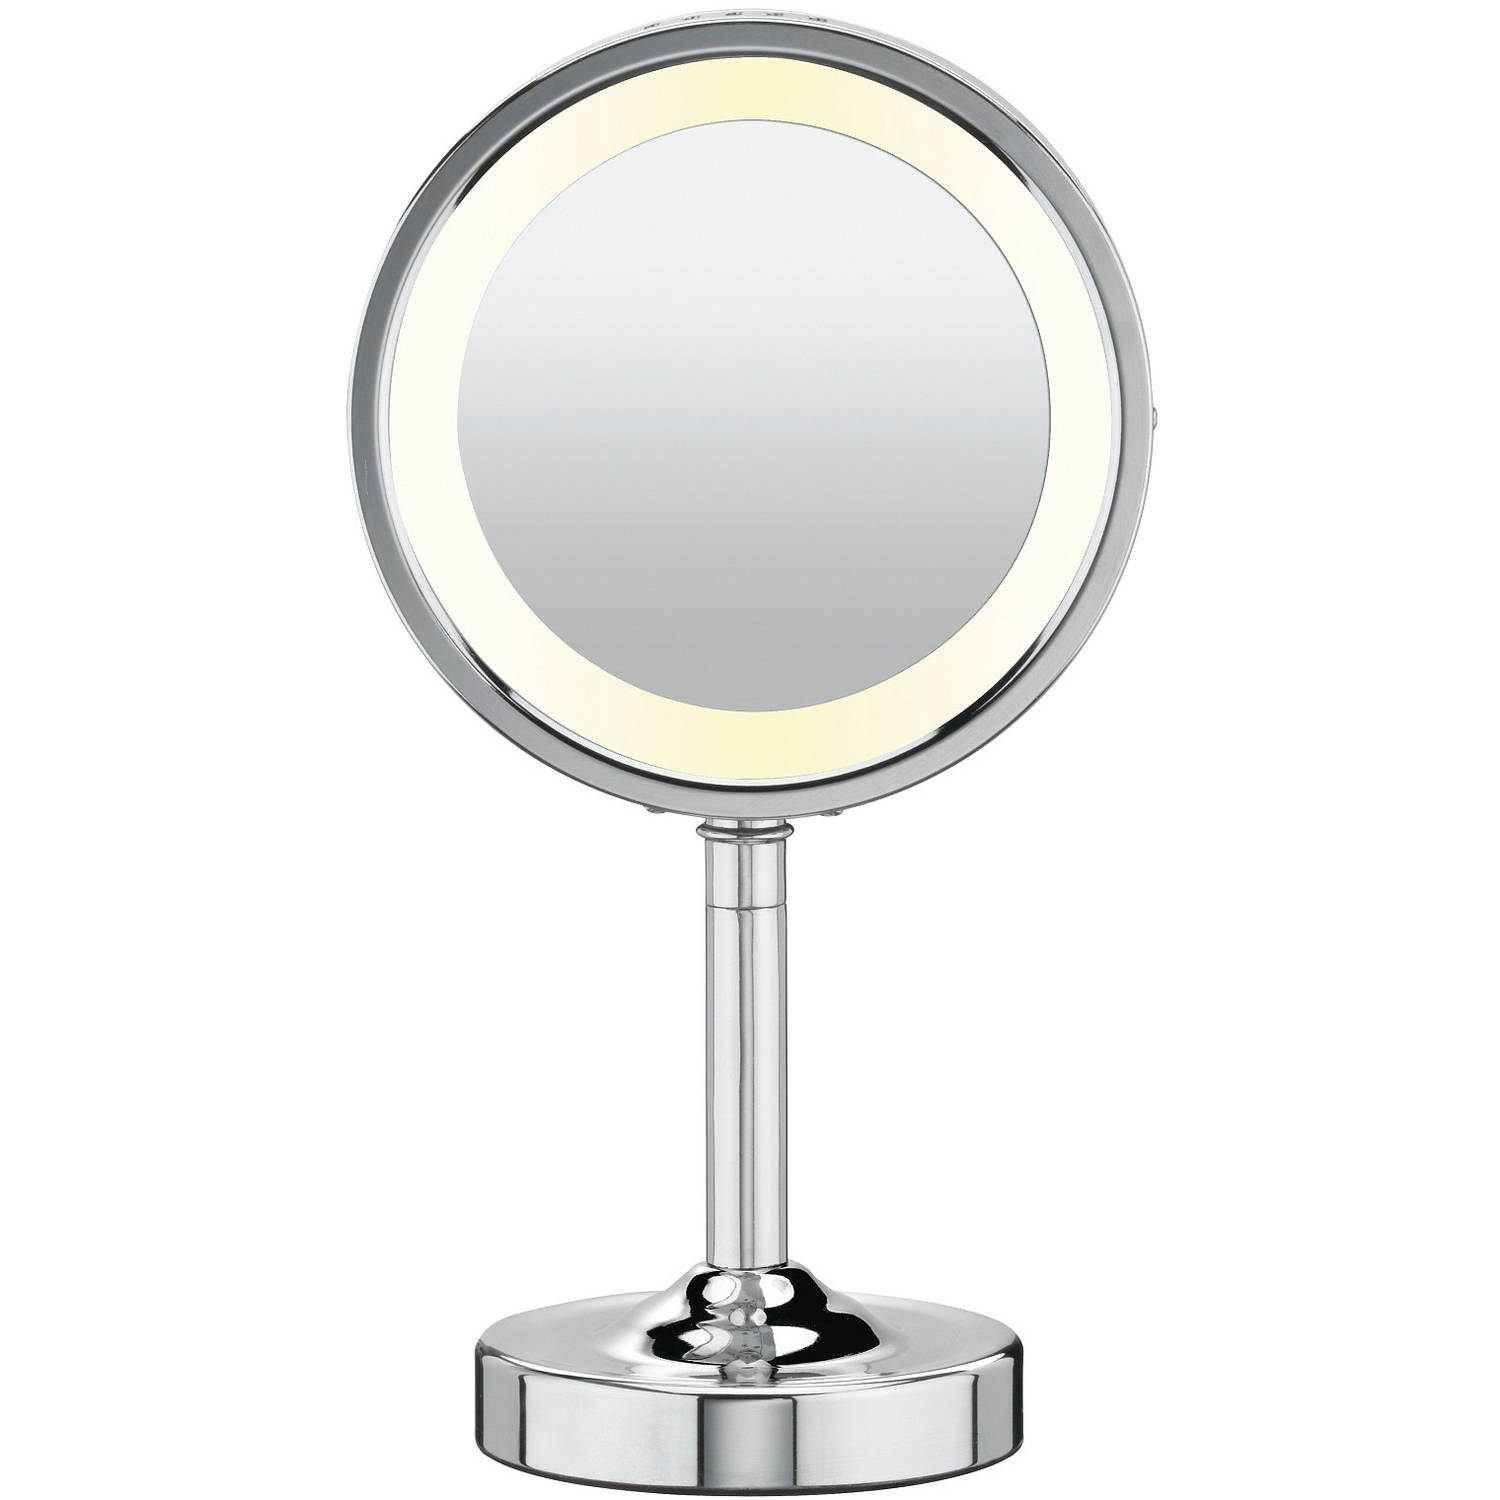 Attractive conair makeup mirror for furniture accessories ideas with conair double-sided lighted makeup mirror